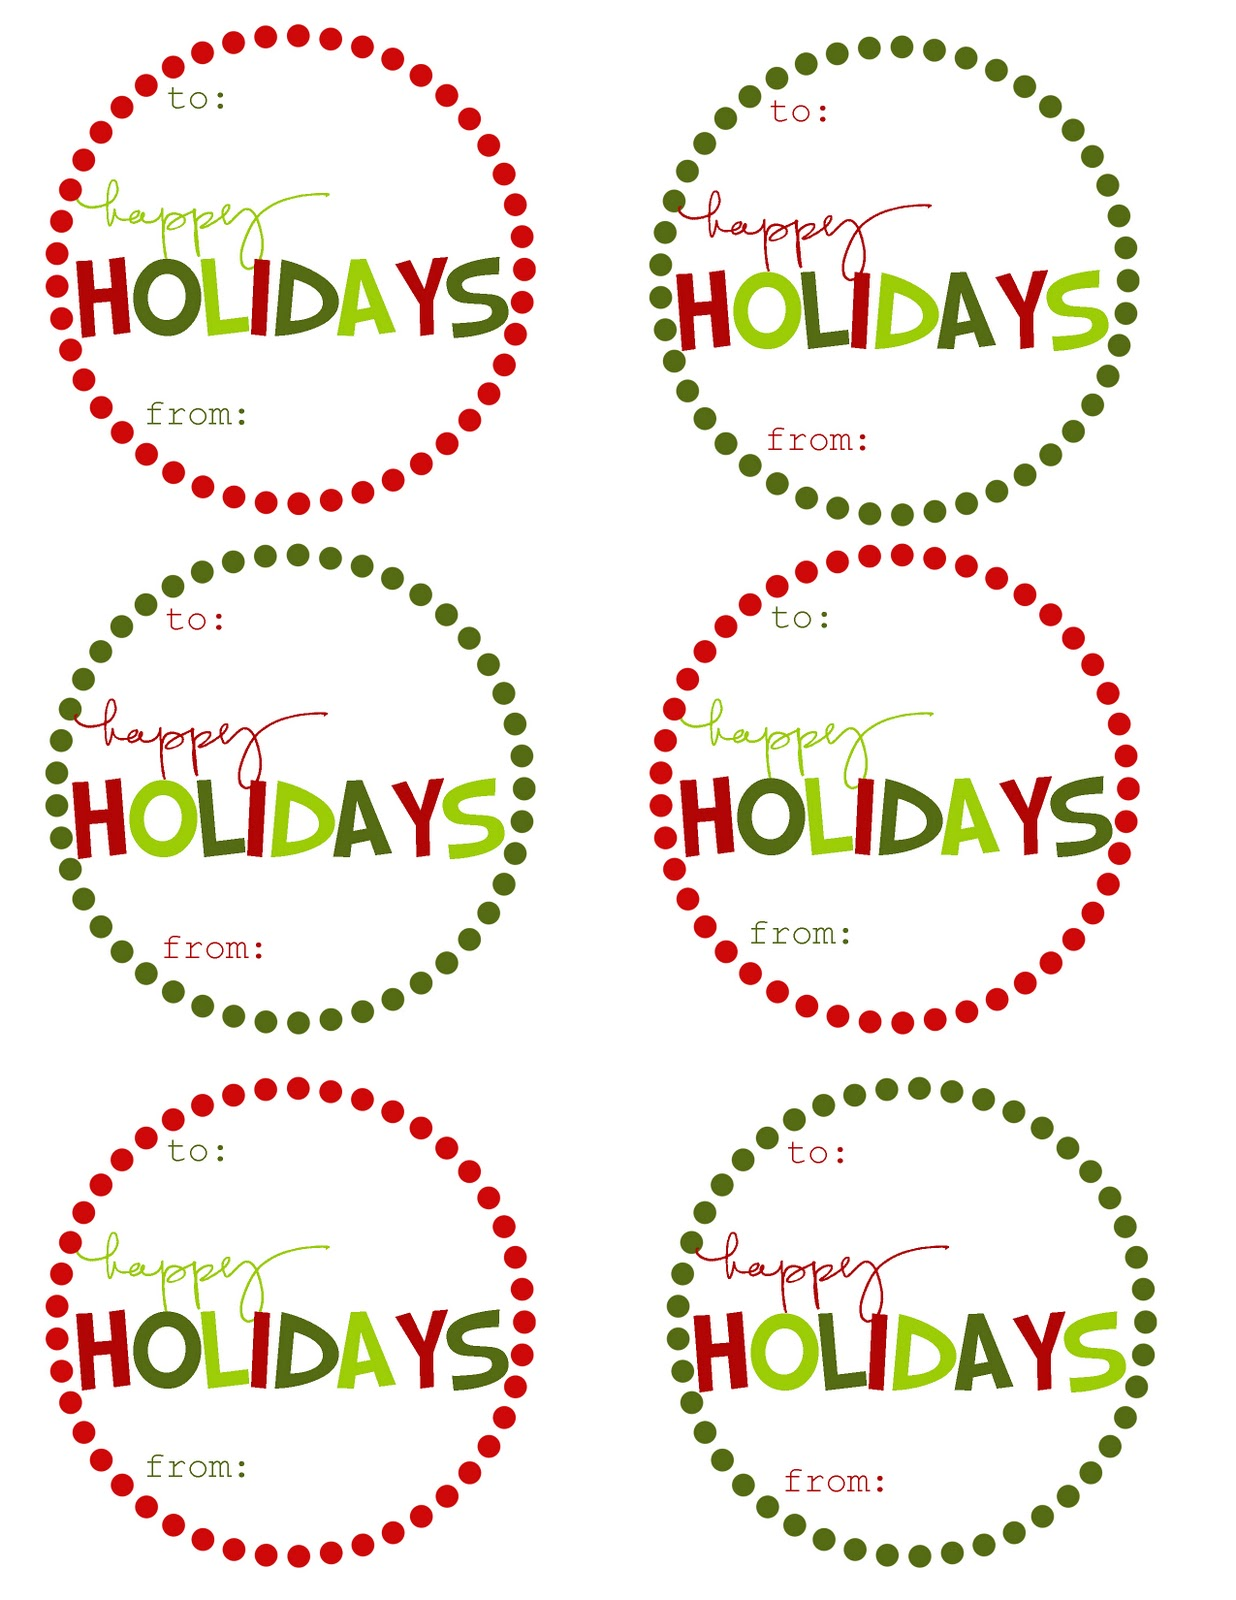 Geeky image intended for holiday gift tags printable